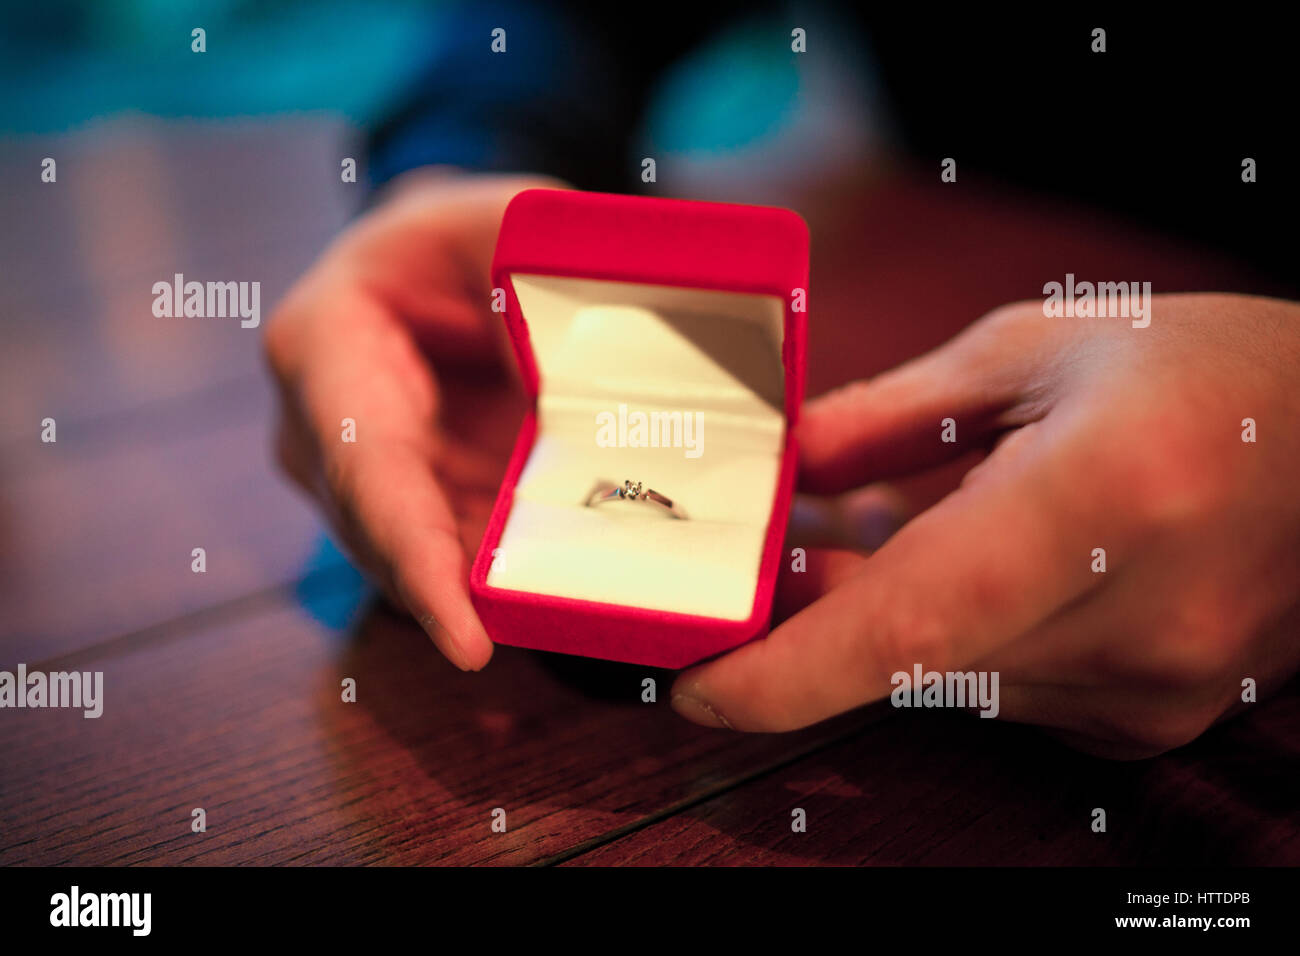 Man makes woman marriage proposal. He opened red jewelry case with engagement ring. He holds box in his hands. - Stock Image